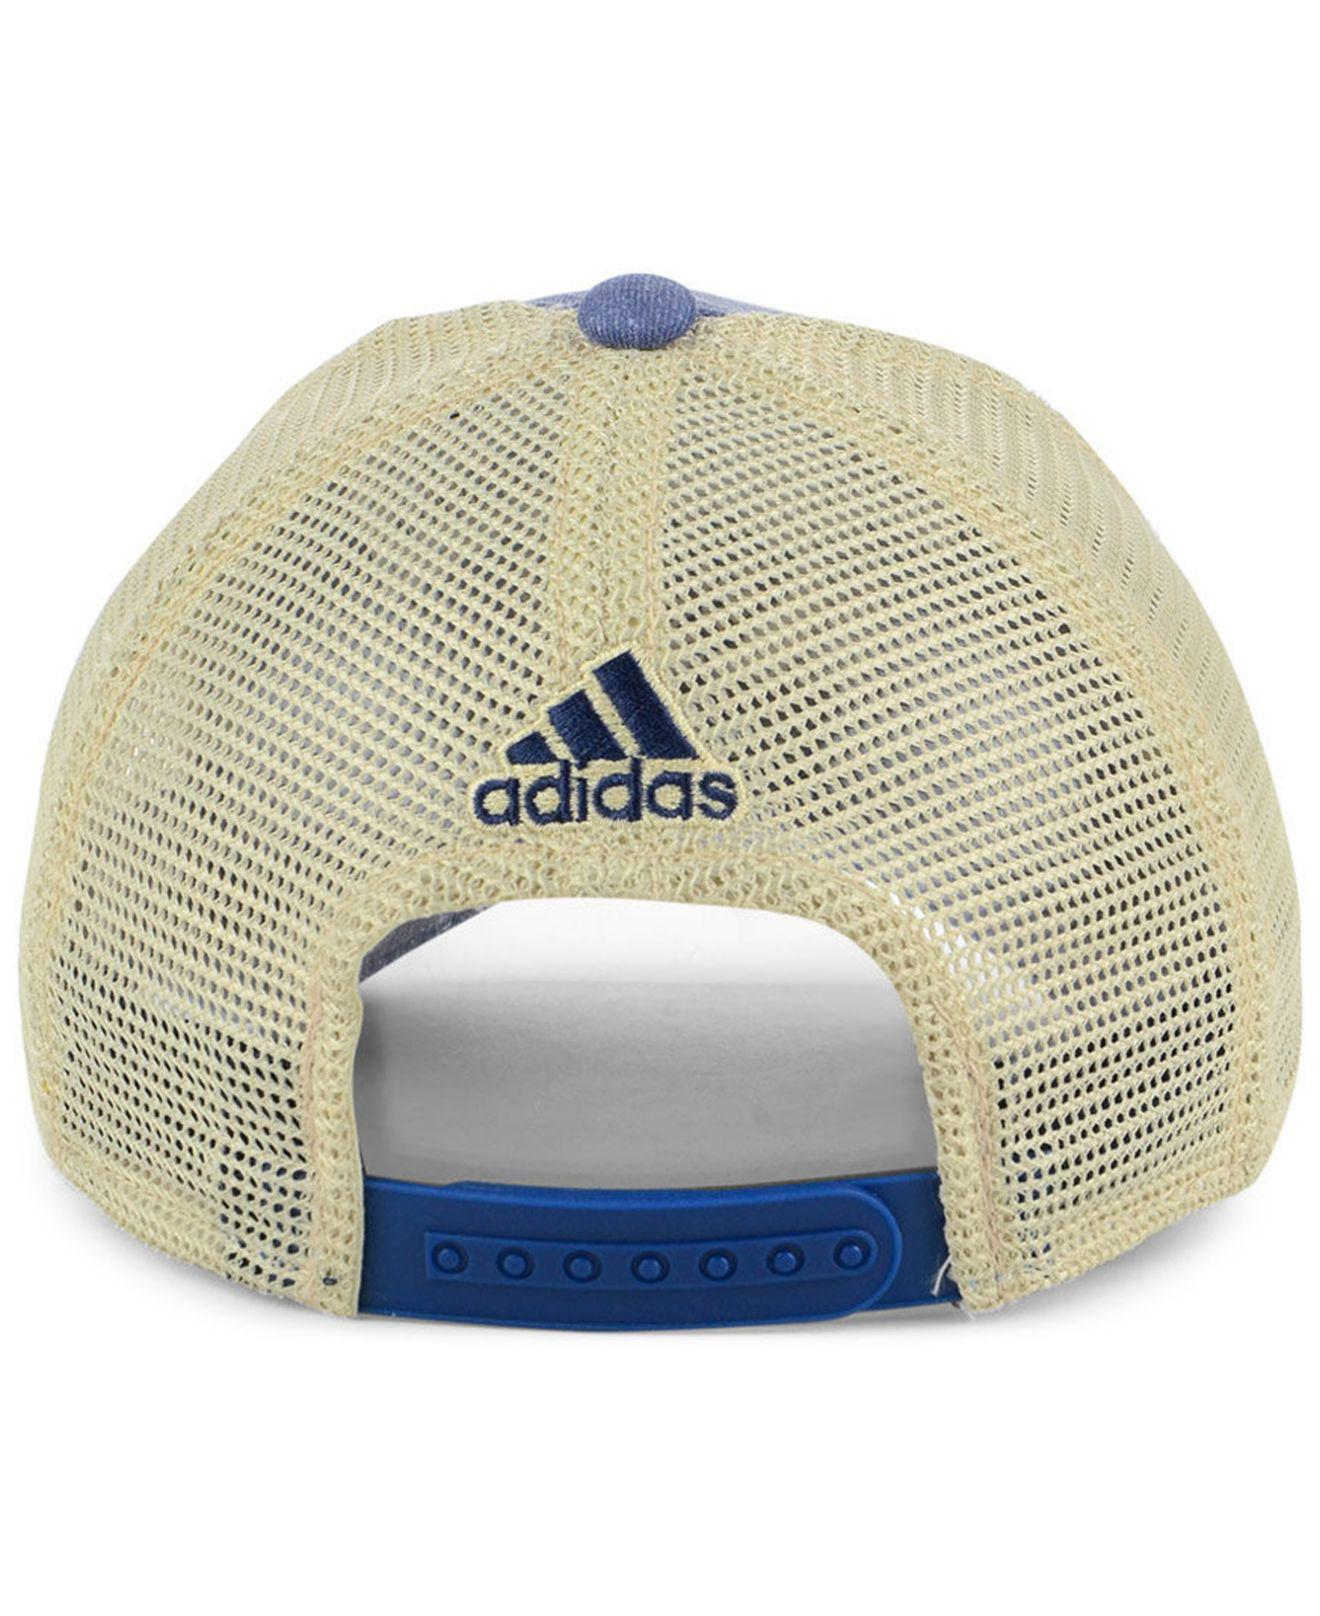 promo code e32a5 988d0 ... france lyst adidas winnipeg jets sun bleached slouch cap in blue for men  0a2ff 1c041